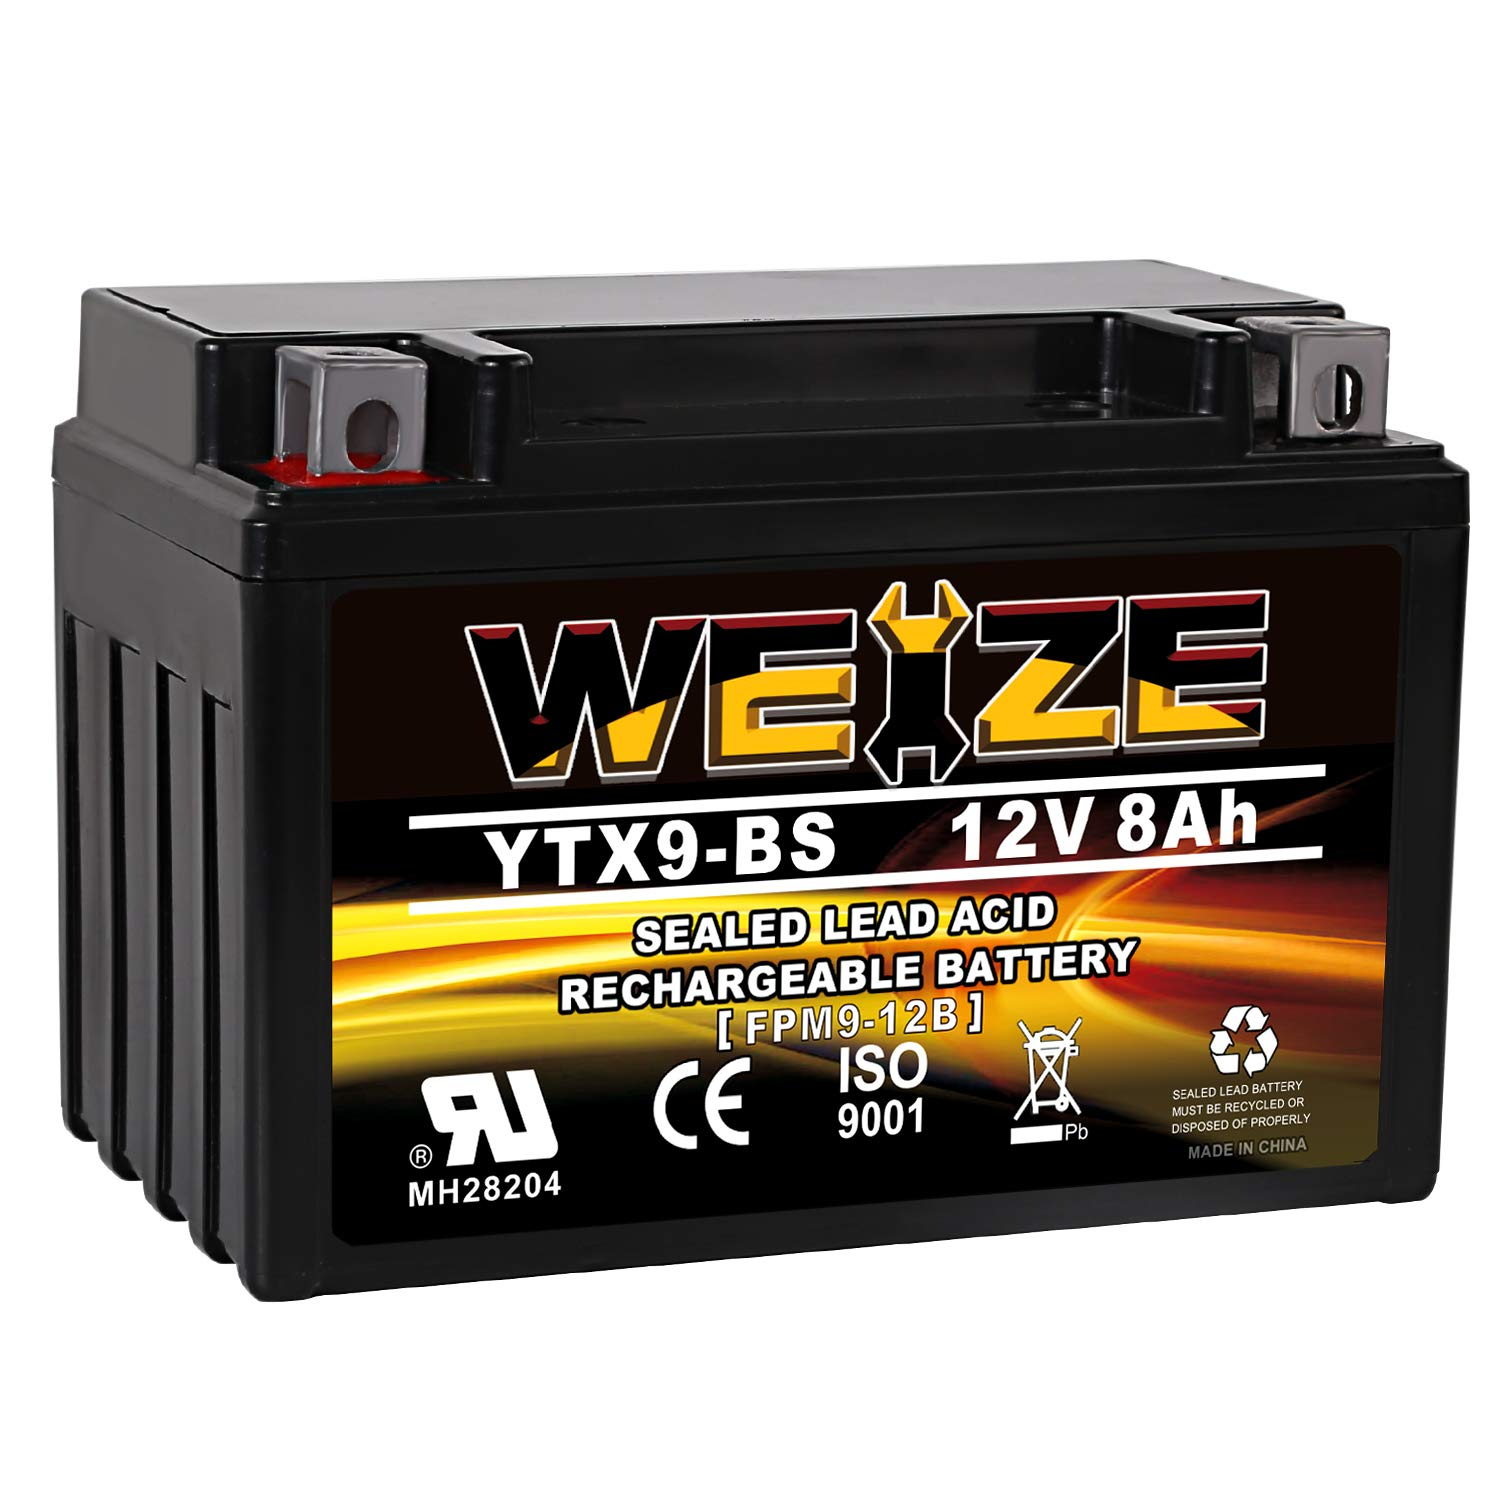 Weize YTX9-BS Battery Maintenance Free For Motorcycle ATV Honda TRX 400EX Sportrax Fourtrax GSXR600 LTZ250 ZX600, Polaris Predator 500,Suzuki GSX-R600 YTX9 ETX9 BS Batteries by WEIZE